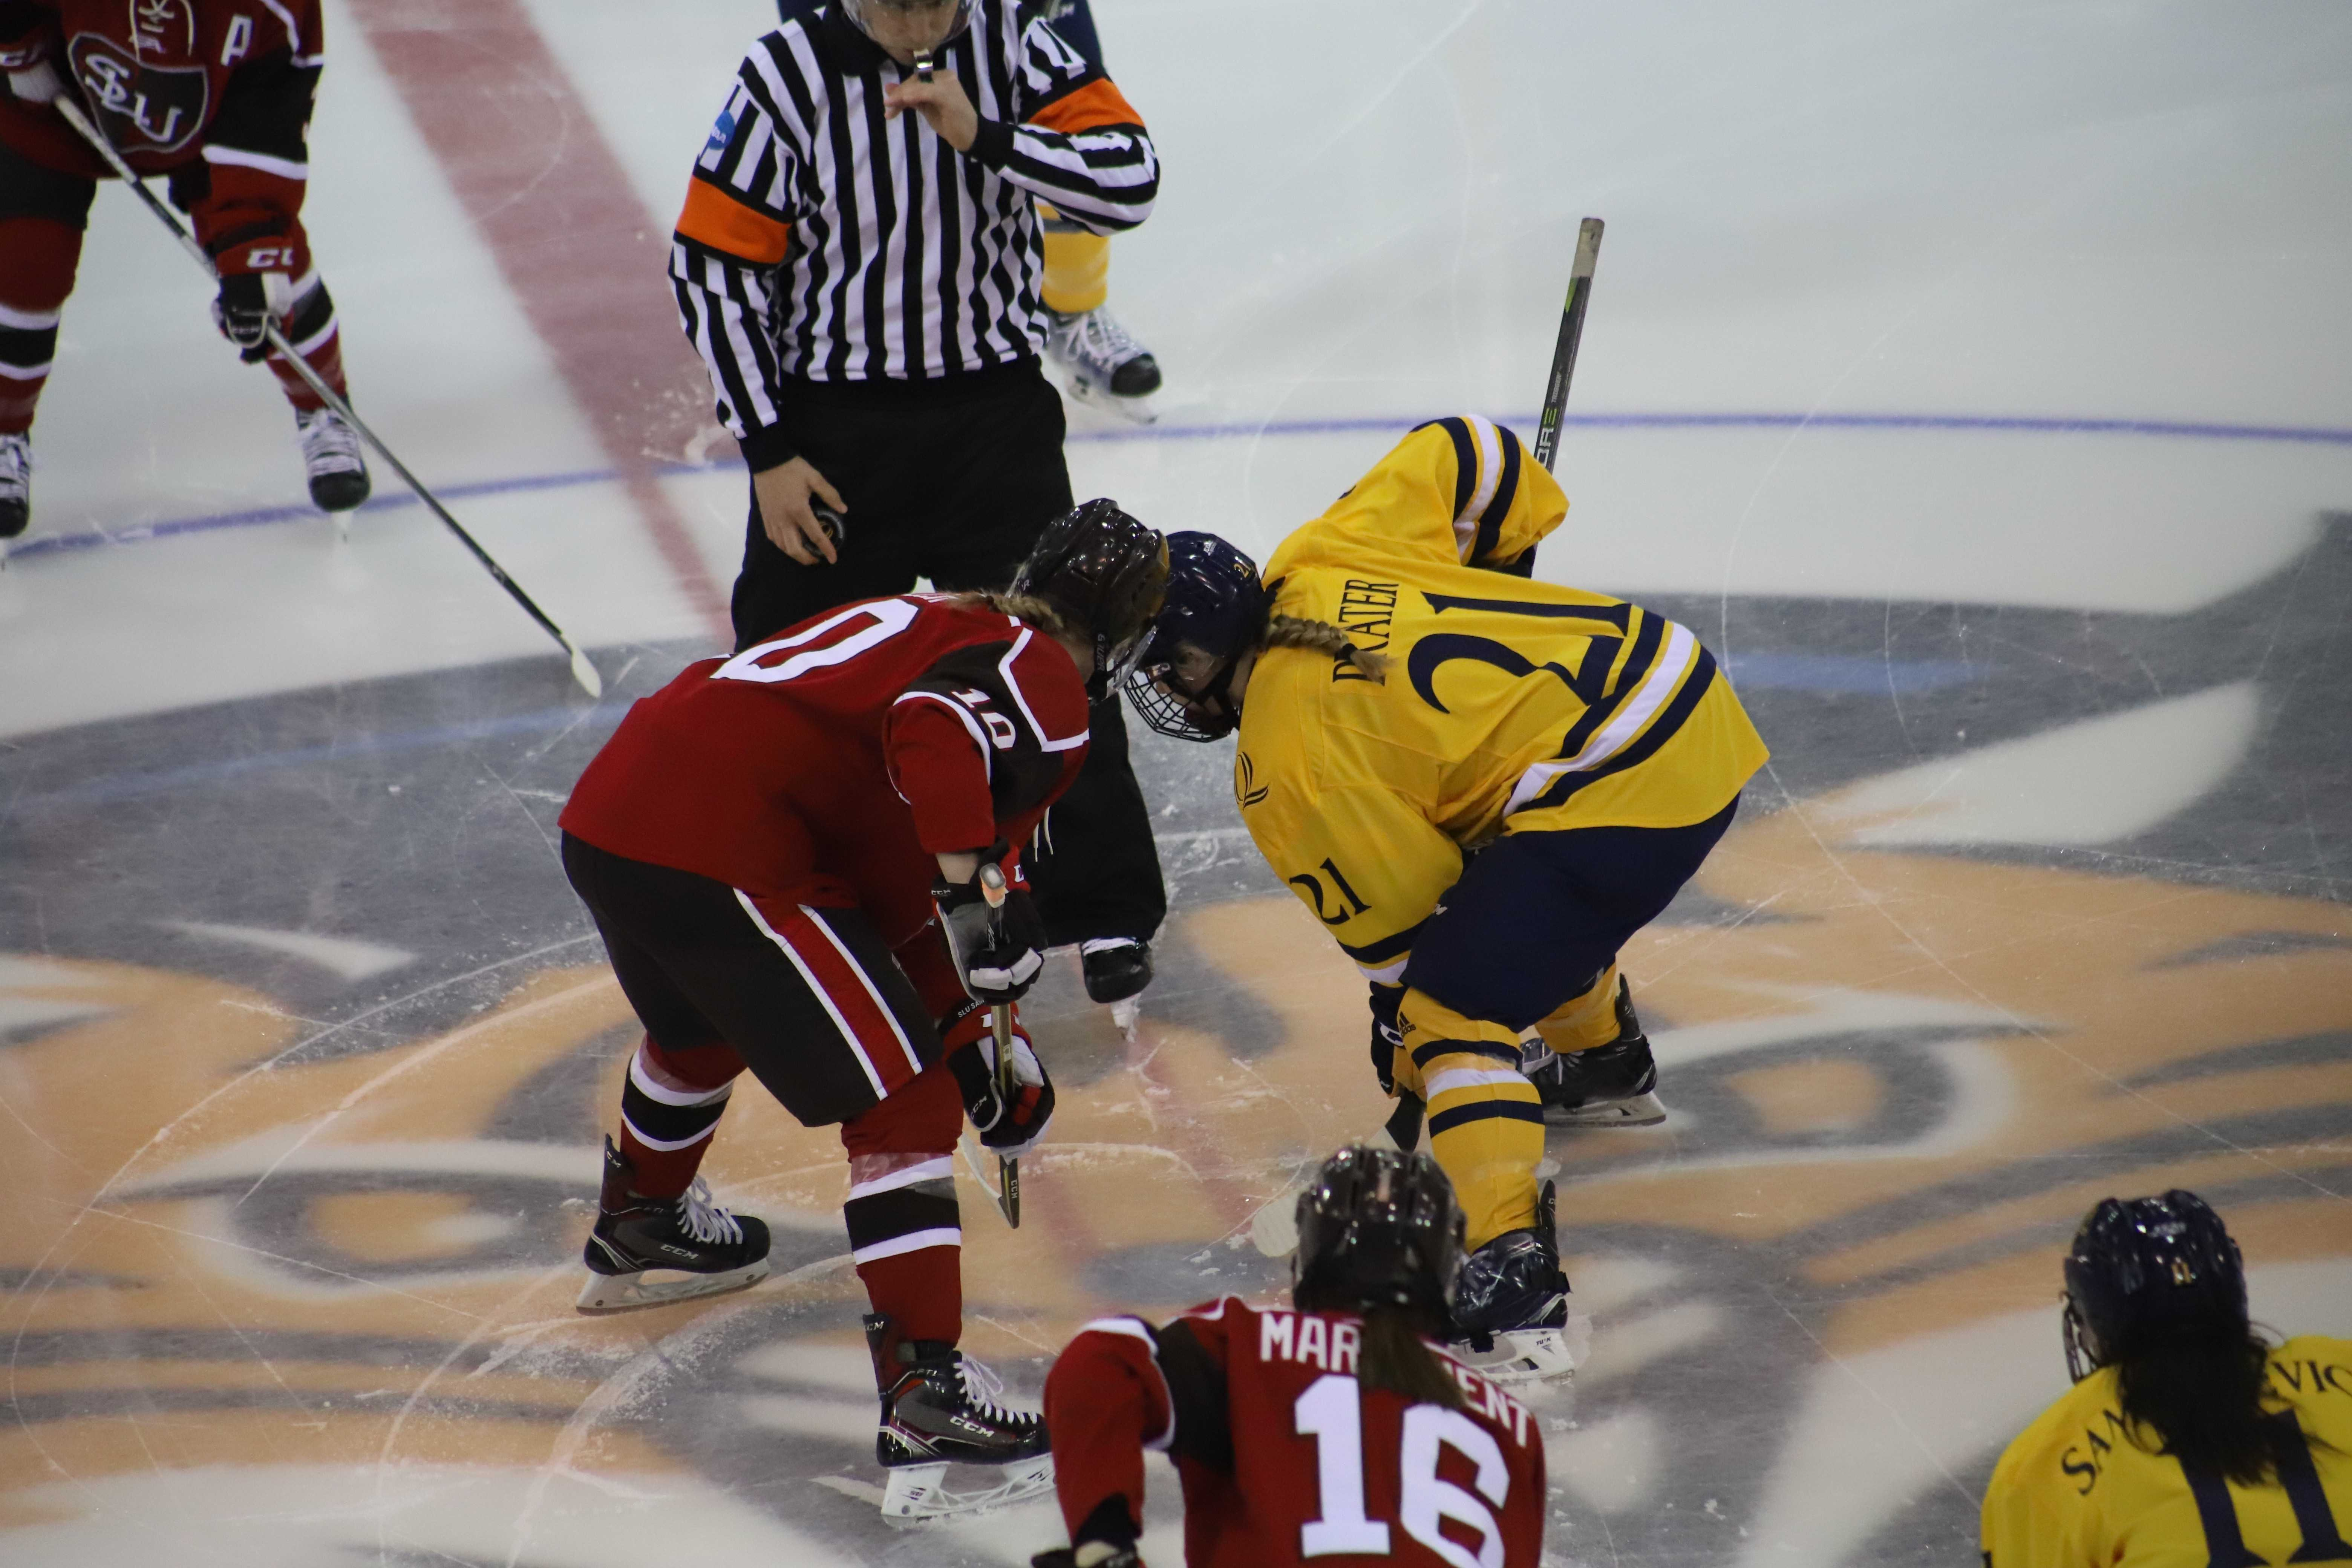 Quinnipiac women's ice hockey plays to 1-1 tie with No. 8 St. Lawrence